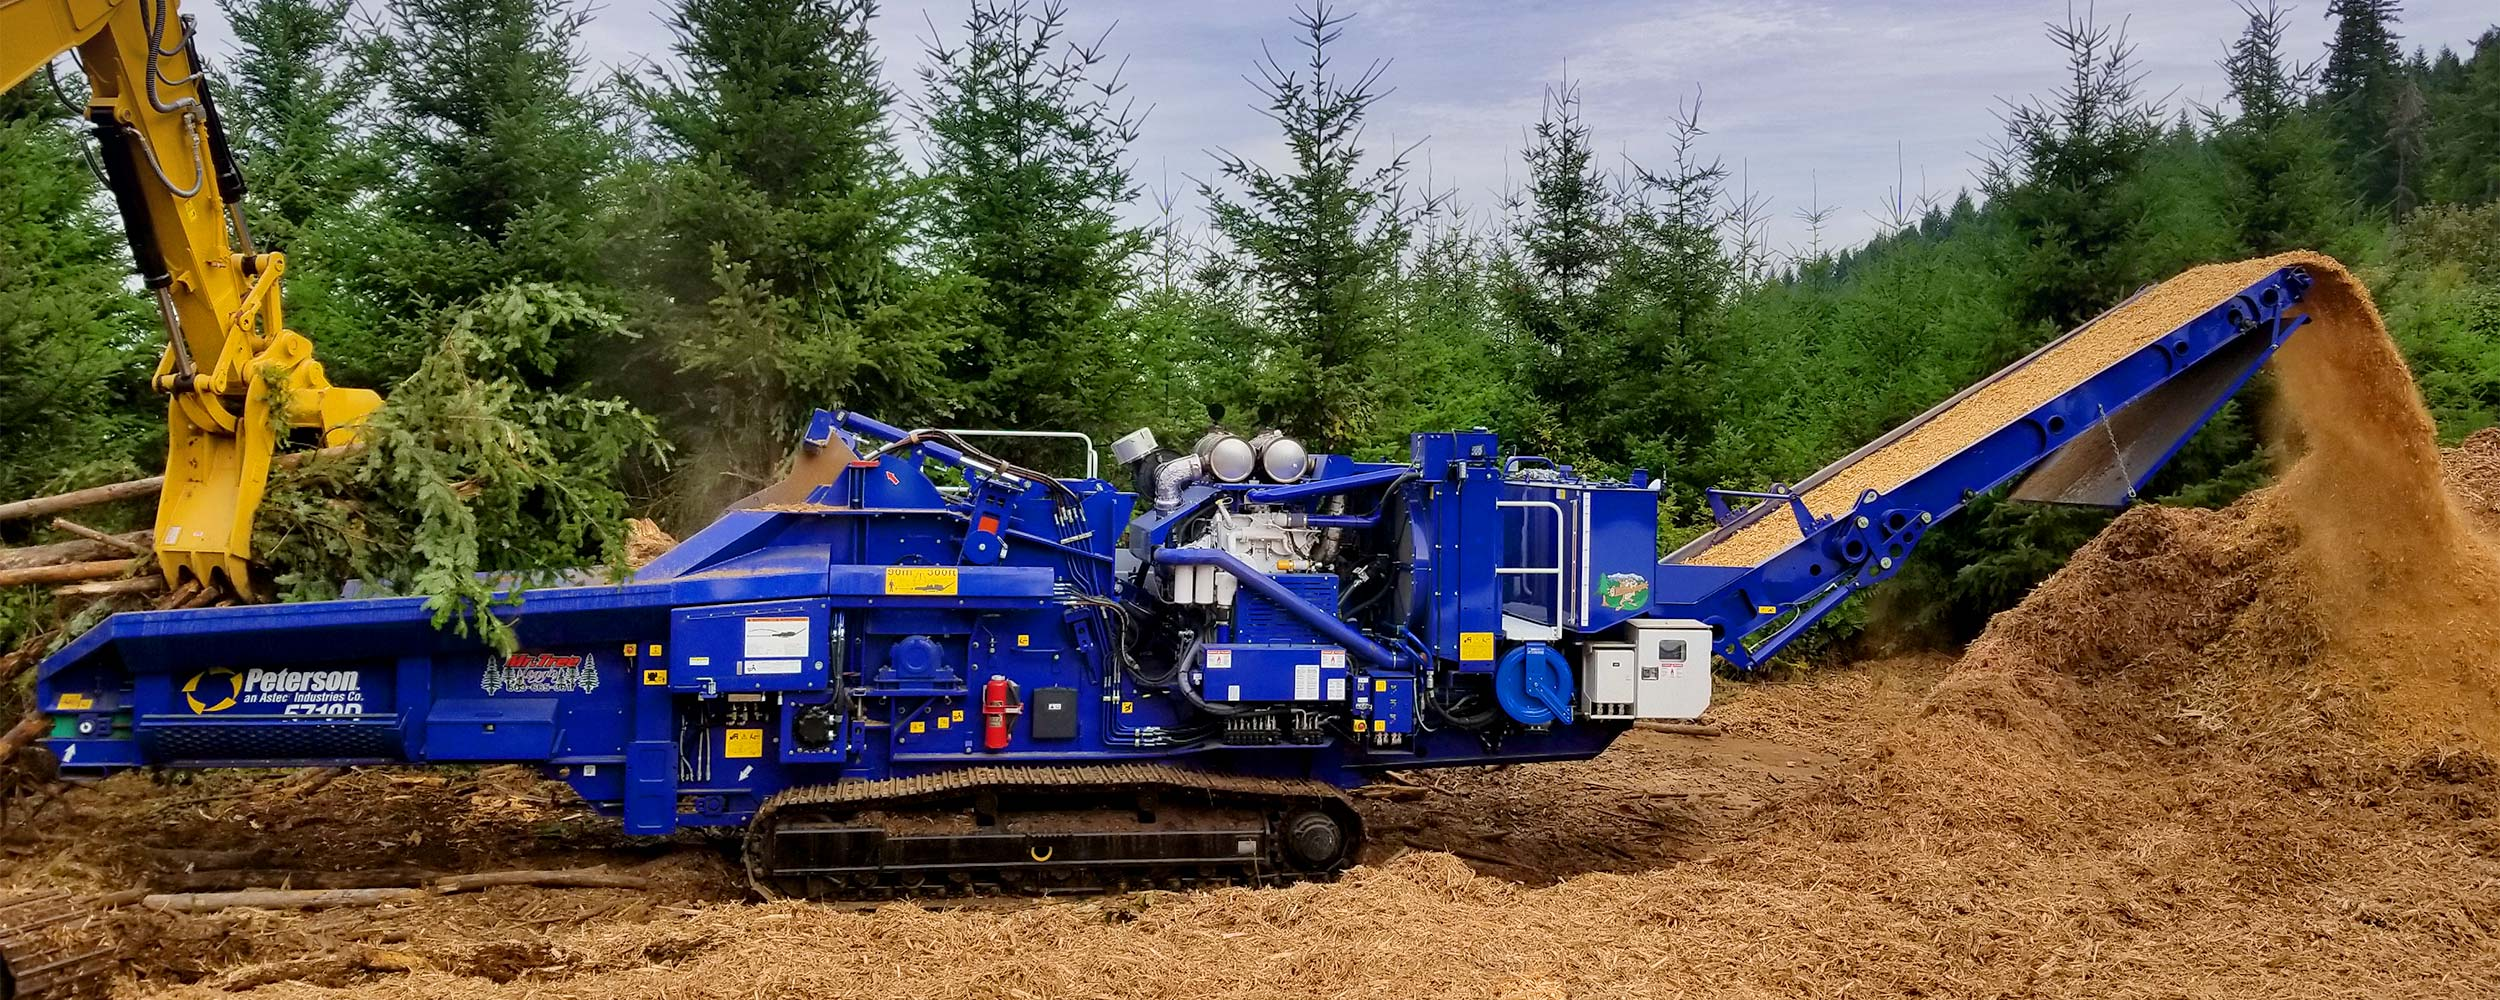 Peterson-5710D-HorizontalGrinder-Forestry-Slash-Limbs-WoodWaste